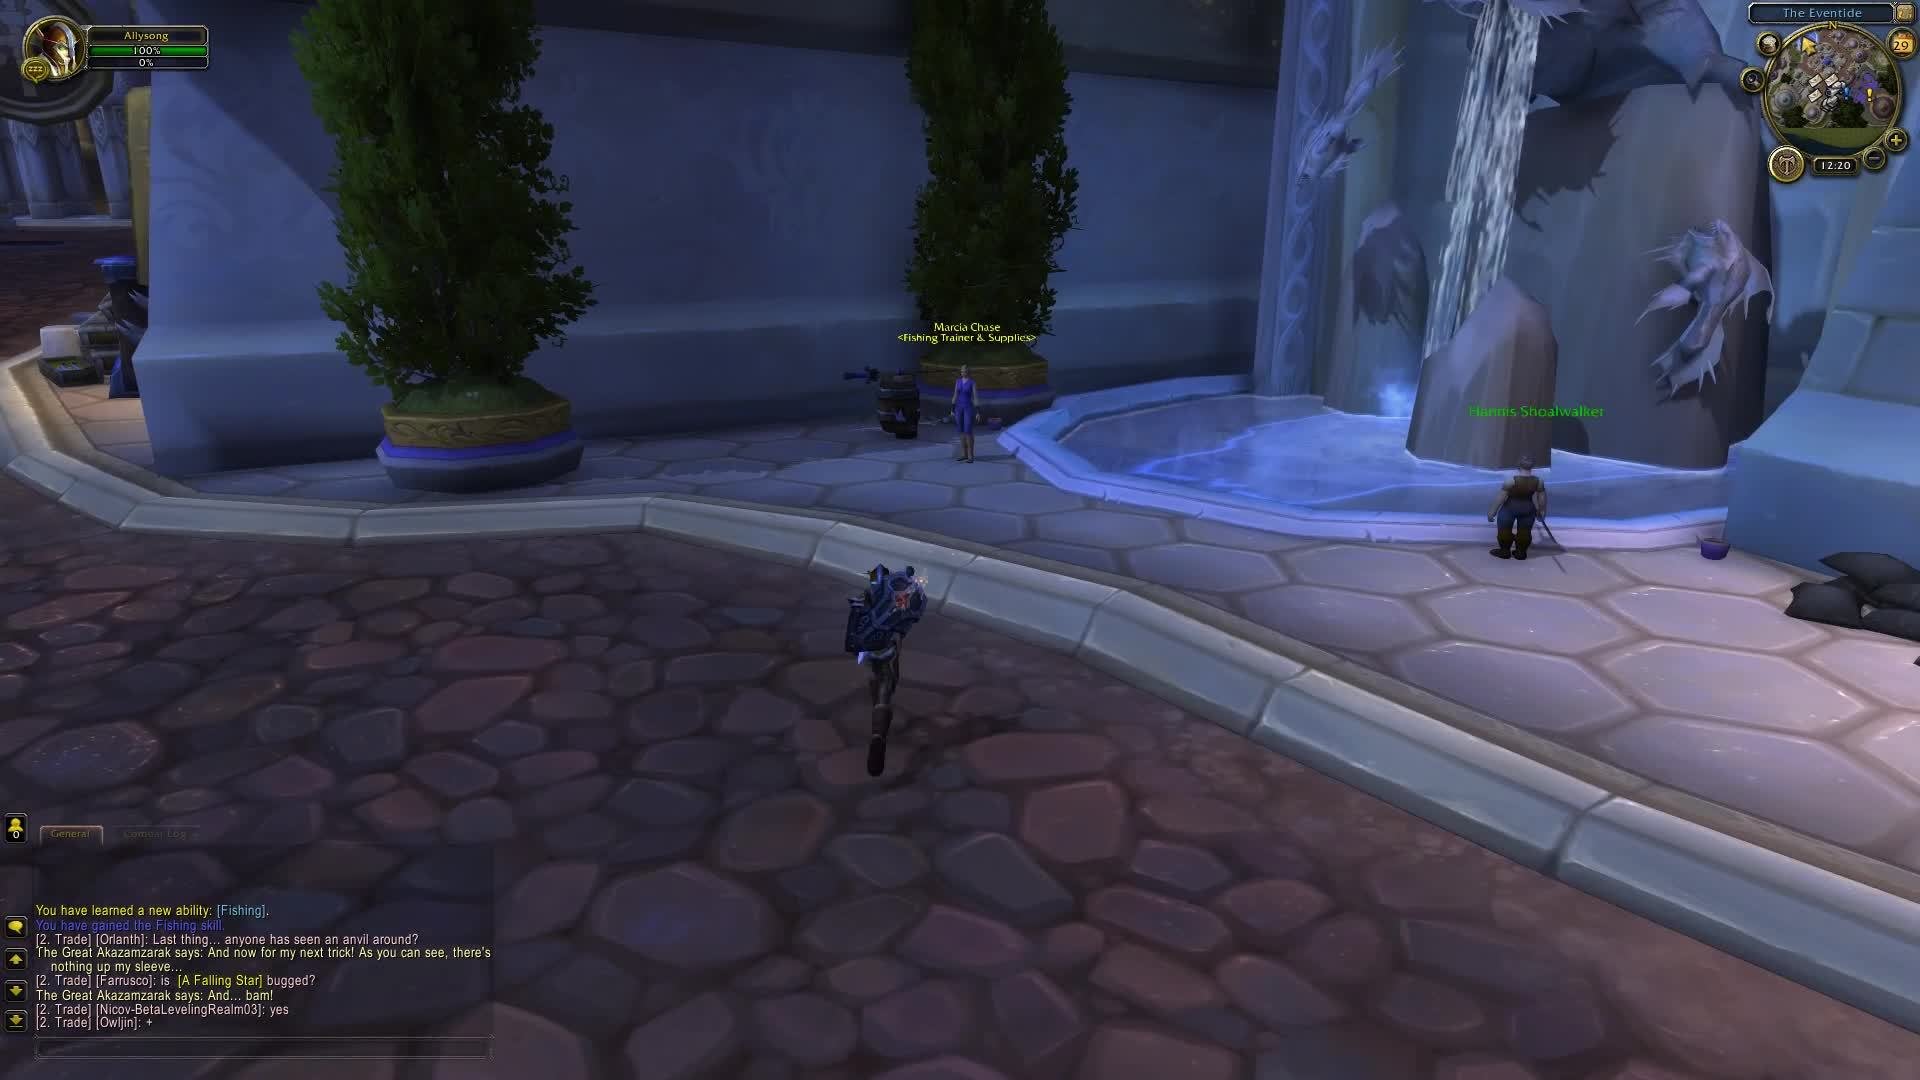 world of warcraft, wow, wowui, DynamicCam Addon NPC Interactions GIFs